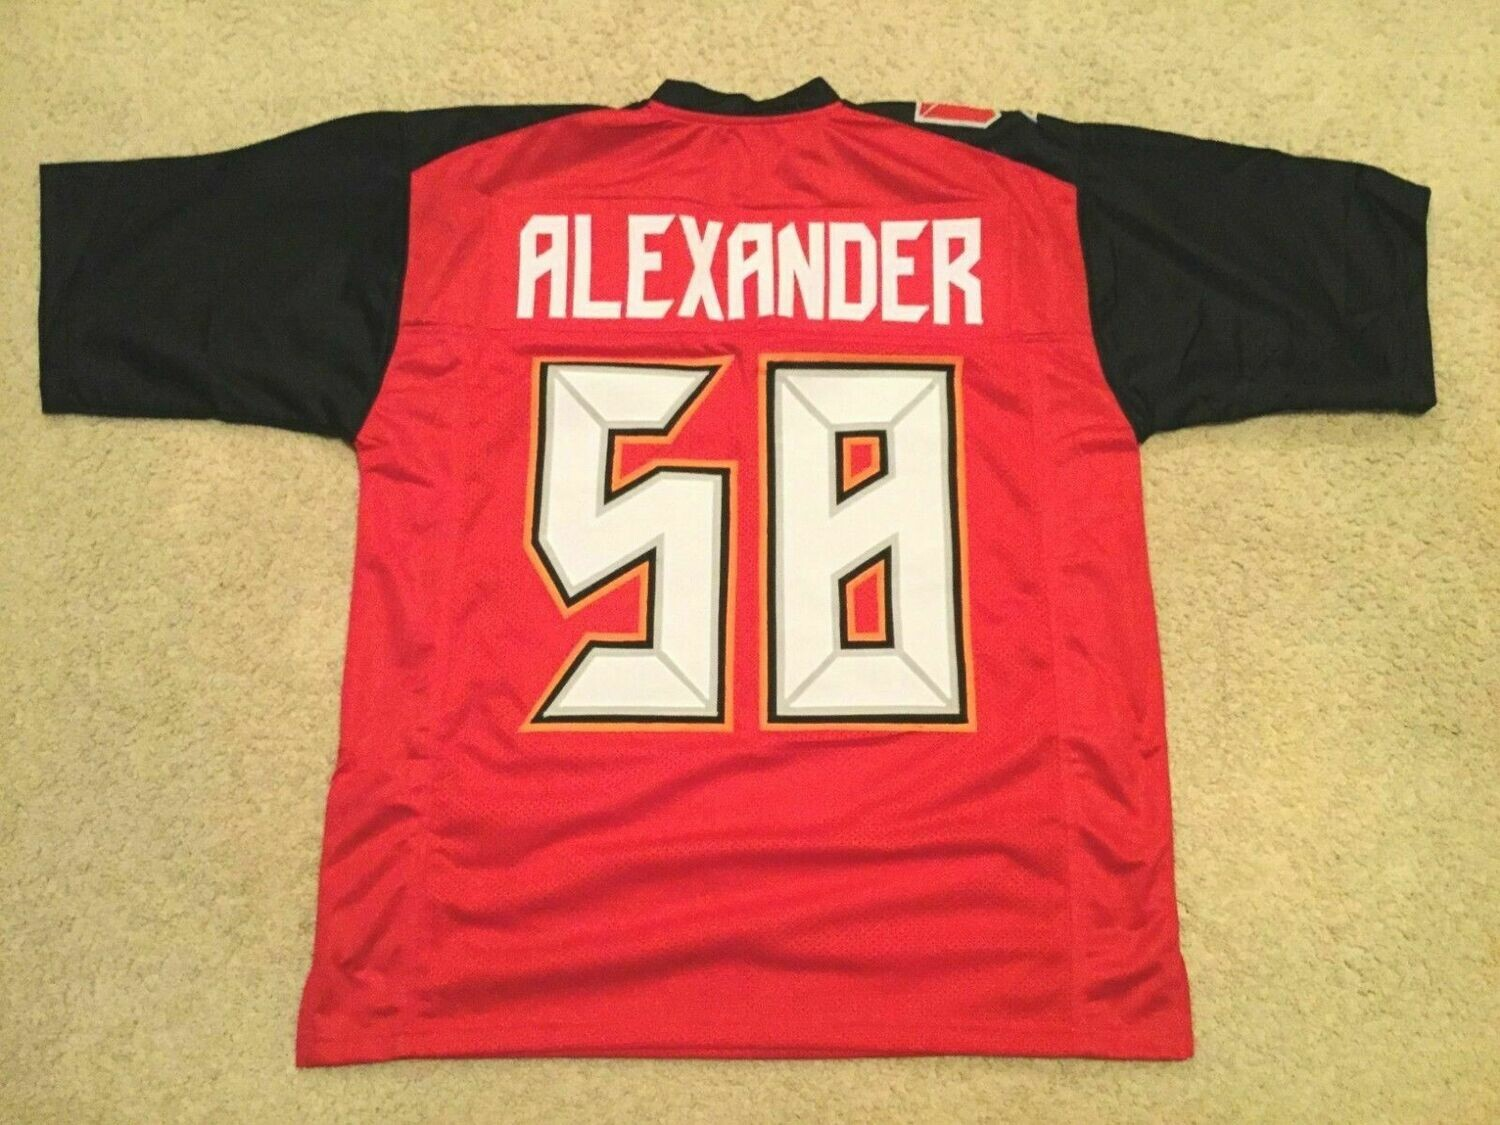 UNSIGNED CUSTOM Sewn Stitched Kwon Alexander Red Jersey